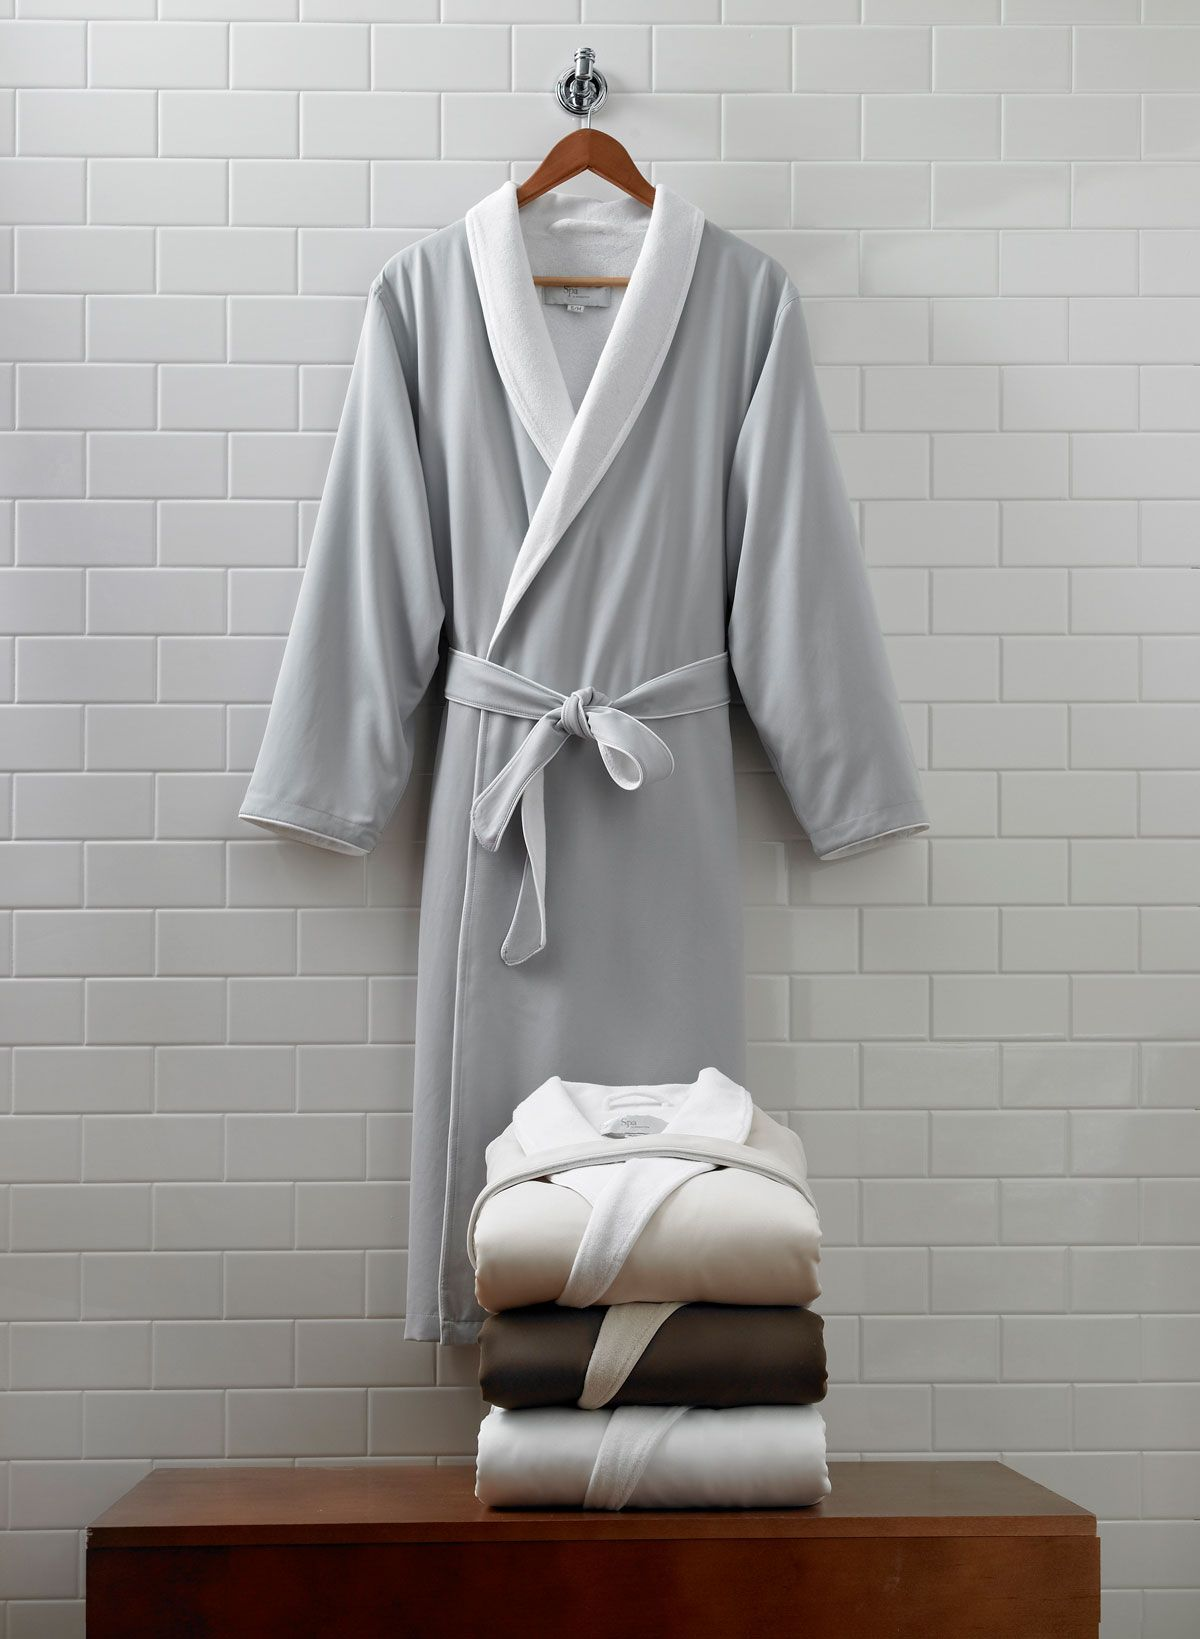 ST. Tropez Signature Spa Robe | Signature spa, Bath robes and Bath ...